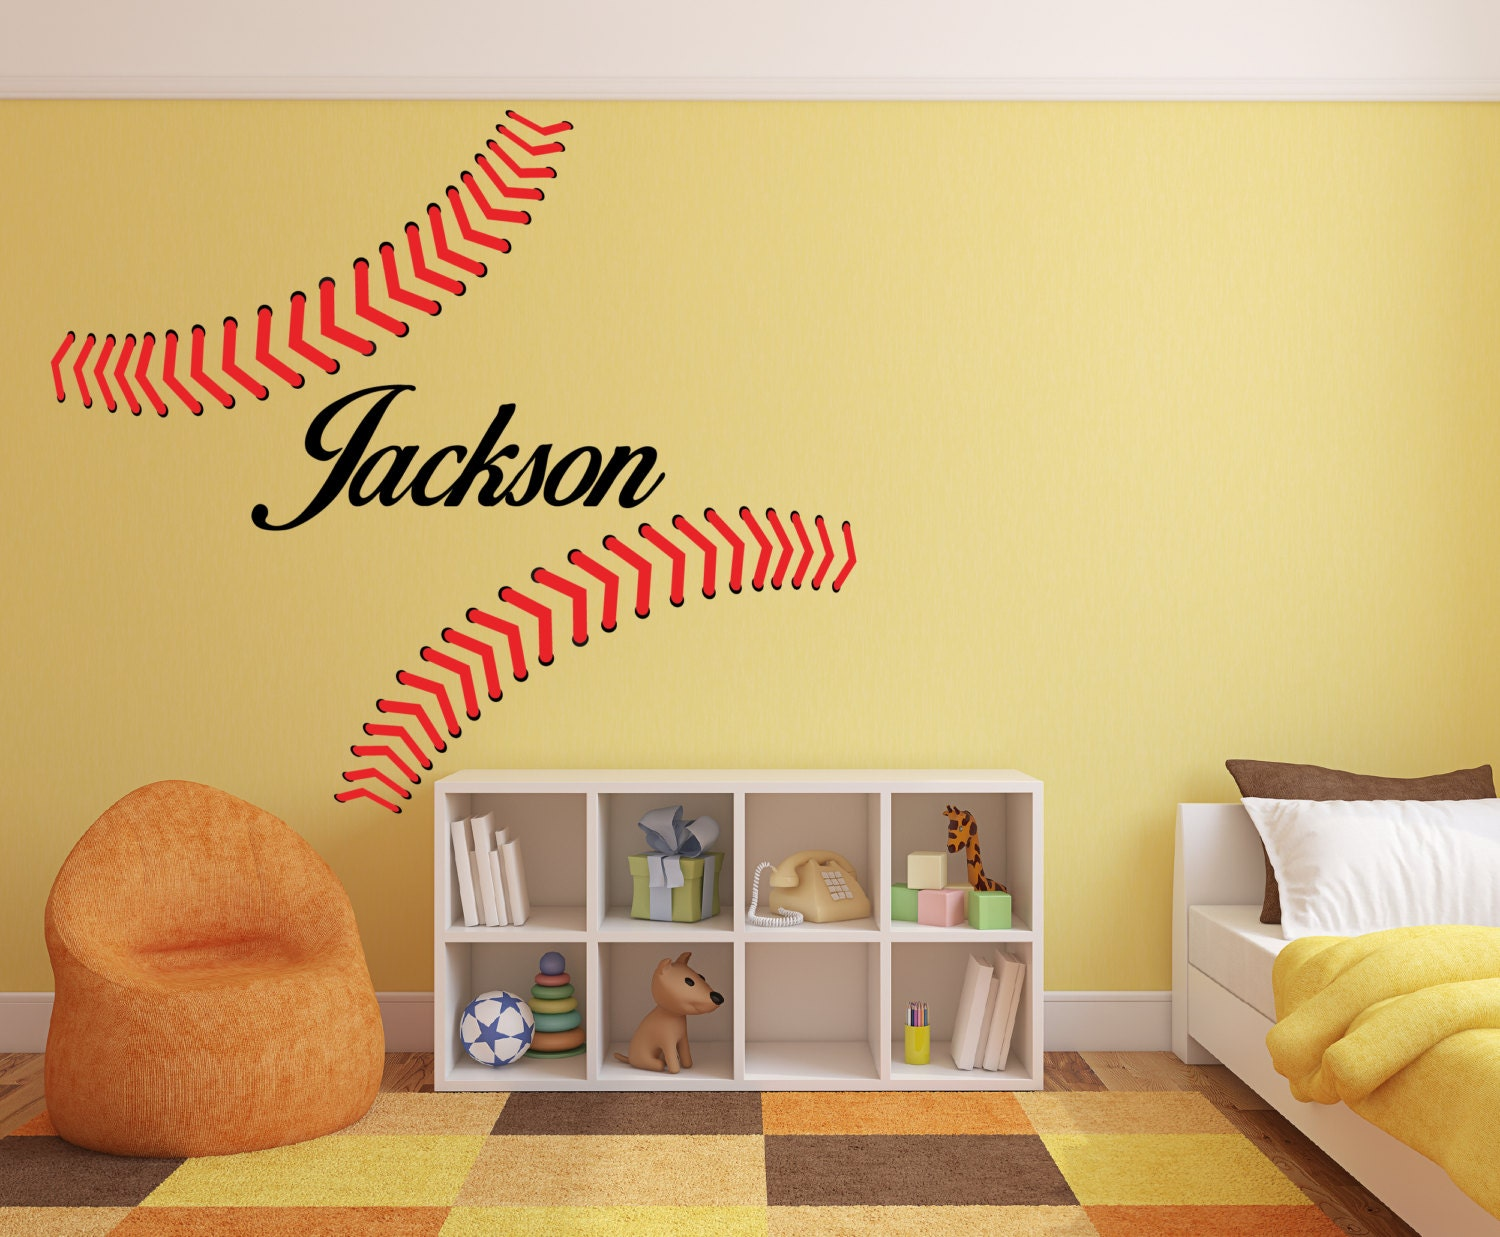 Personalized Baseball Stitches Seams with your Name Wall Decor